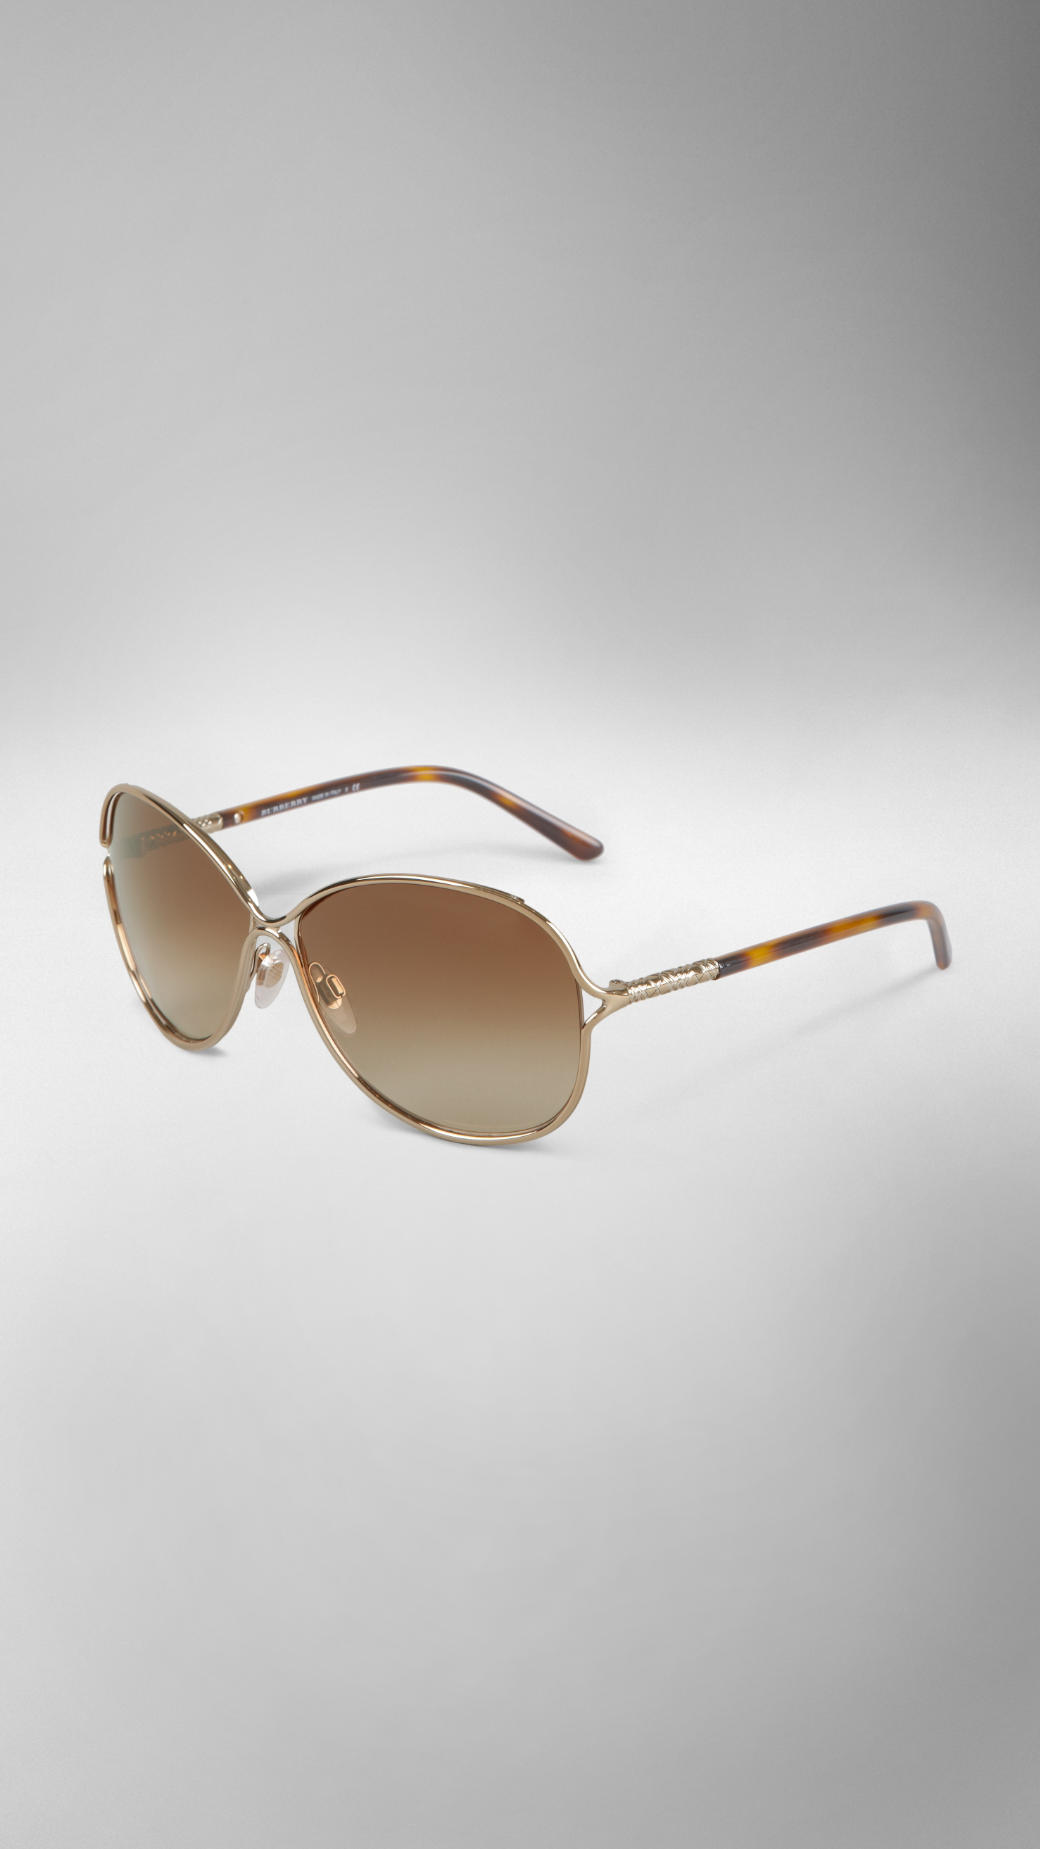 c4039d3ed2e8 Lyst - Burberry Metal Round Frame Sunglasses in Metallic